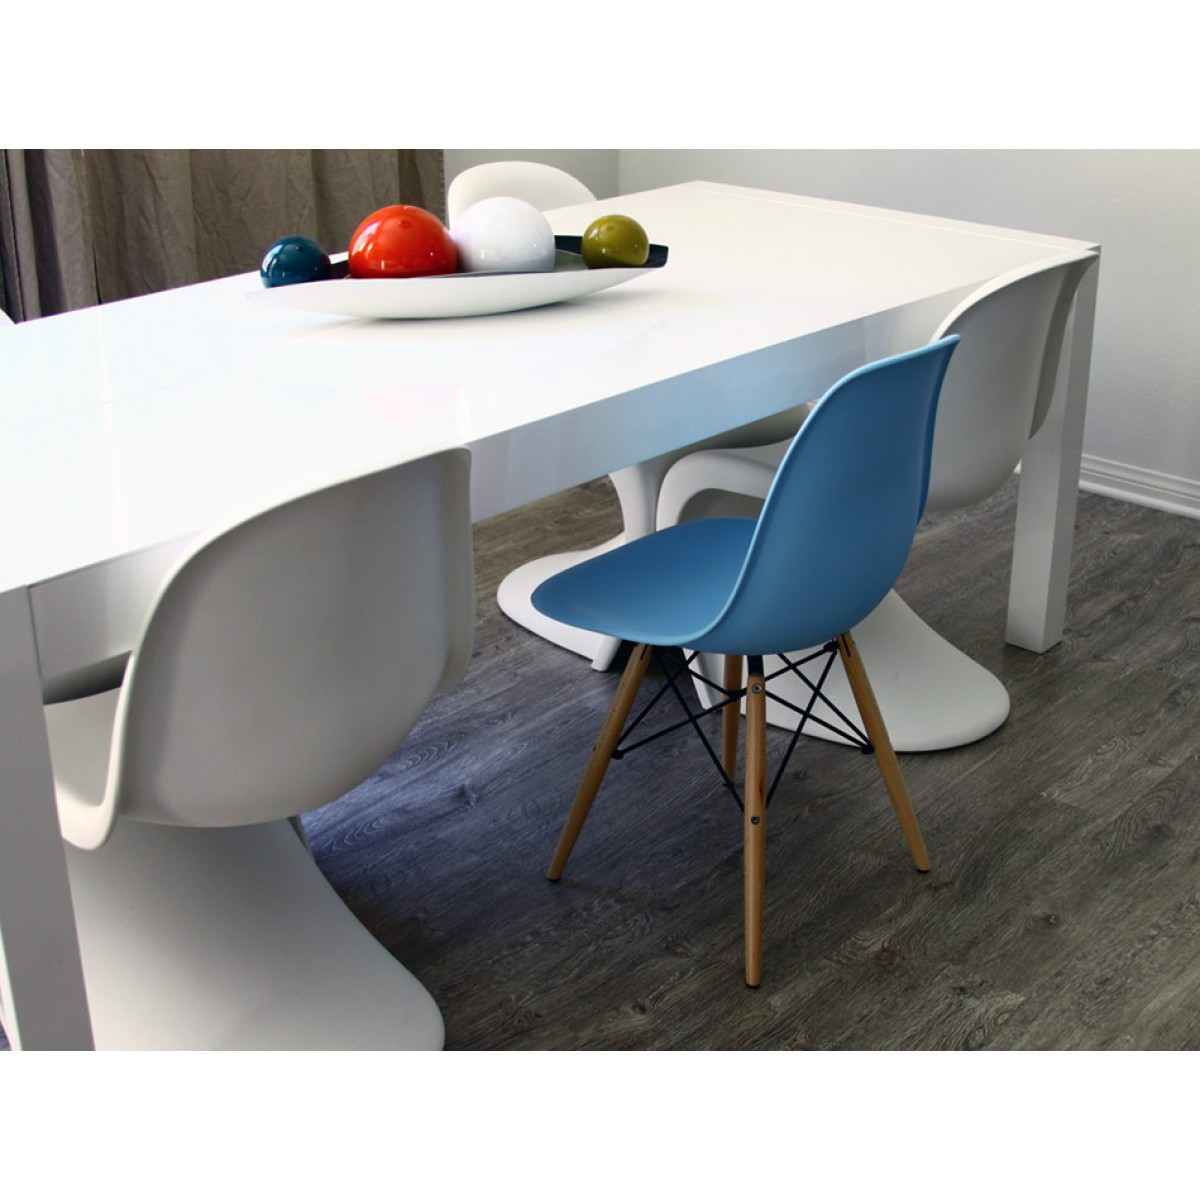 Formica Dining Room Tables  41 For Sale at 1stdibs